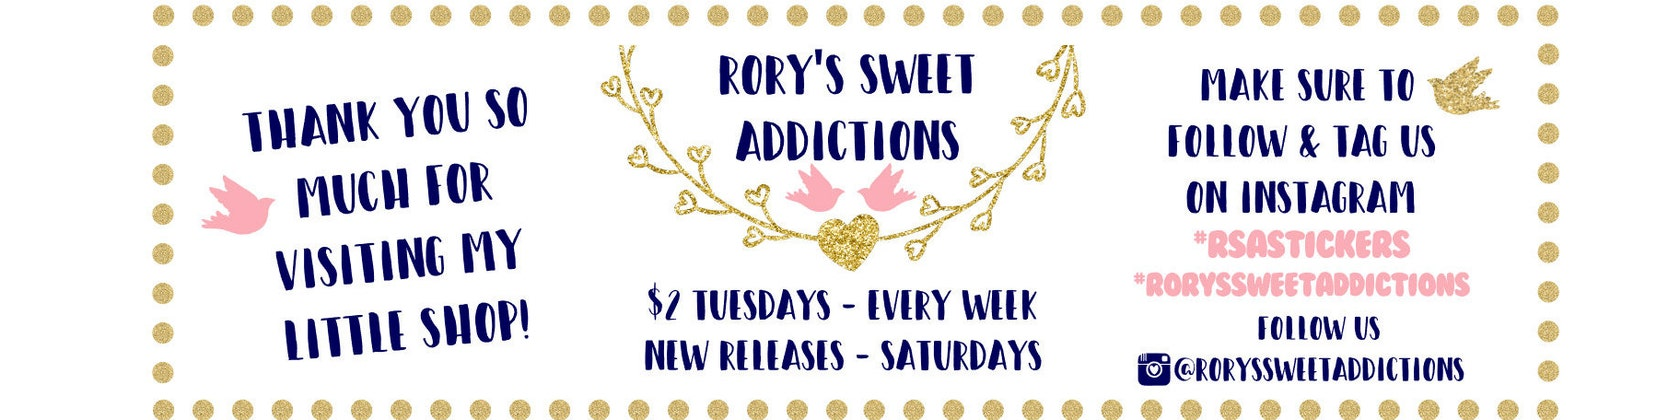 rorys sweet addictions by roryssweetaddictions on etsy